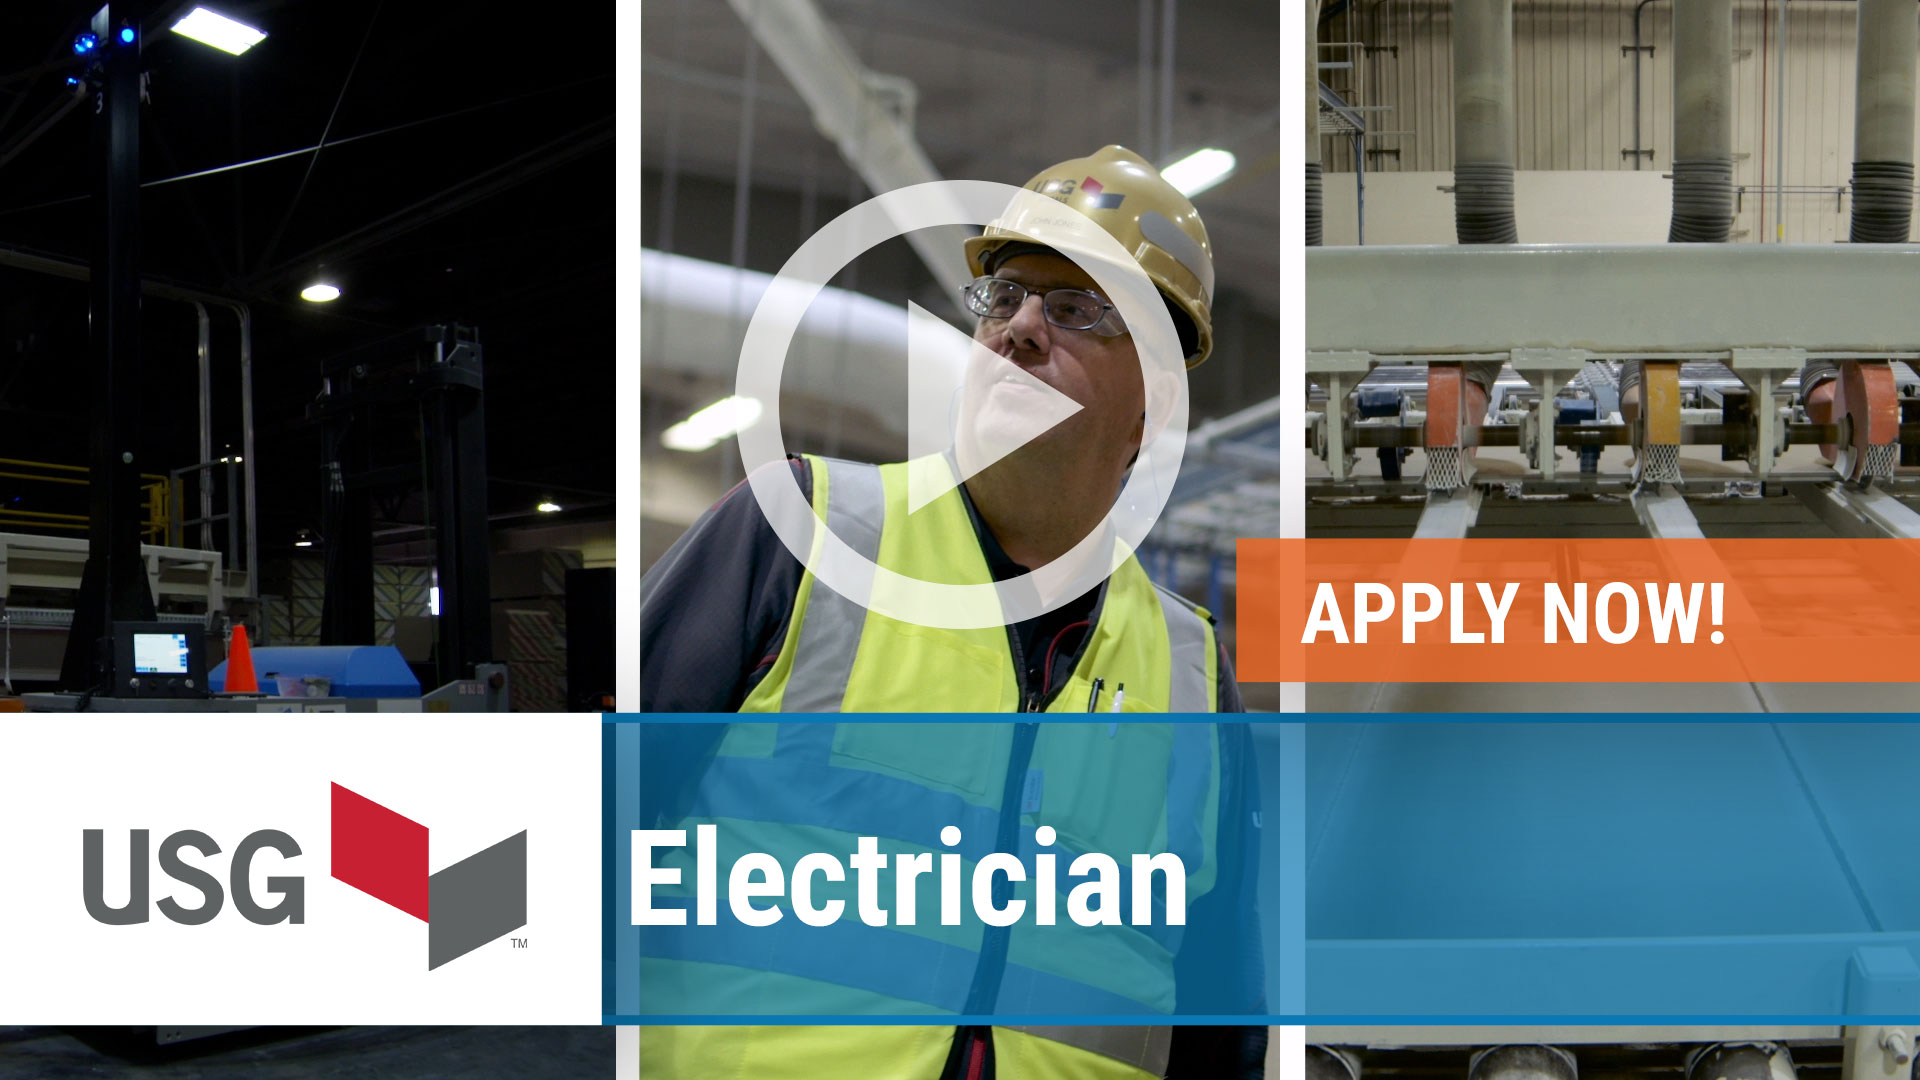 Watch our careers video for available job opening Electrician in Gypsum, OH, USA